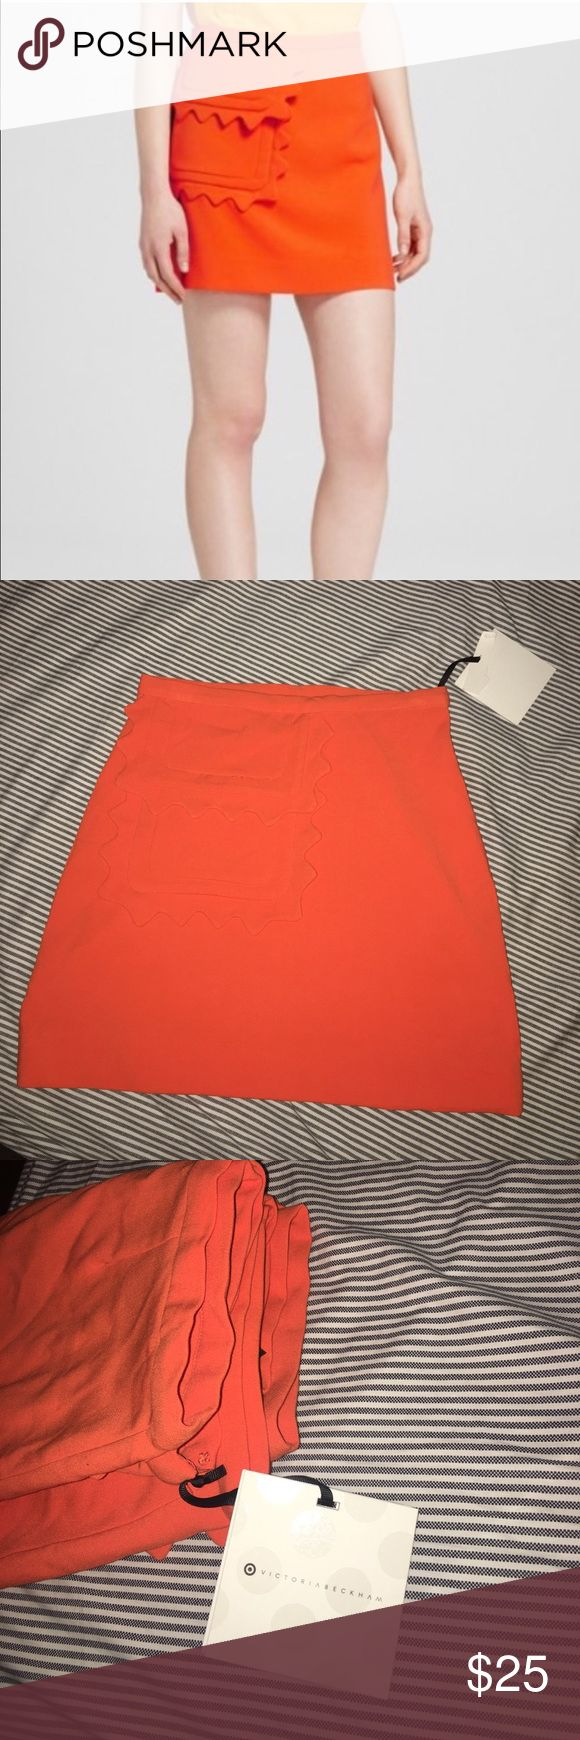 ‼️NWT VB x Target Scalloped Orange Skirt‼️ BNWT Victoria Beckham for Target orange scalloped detailed skirt. Super cute and easily transitioned into fall when paired with tights and ankle boots! Purchased with markings on inside tag. IF YOU NEED MORE PICTURES PLEASE COMMENT OF WHERE AND I WILL TAKE THEM. DO NOT BUY ANY LISTINGS FROM ME IF YOU HAVE ANY QUESTIONS WITHOUT ASKING FOR PICTURES TO CLARIFY. THANK YOU FOR YOUR HELP TO HAVE CLEAR COMMUNICATION BETWEEN BUYER AND SELLER. Victoria…